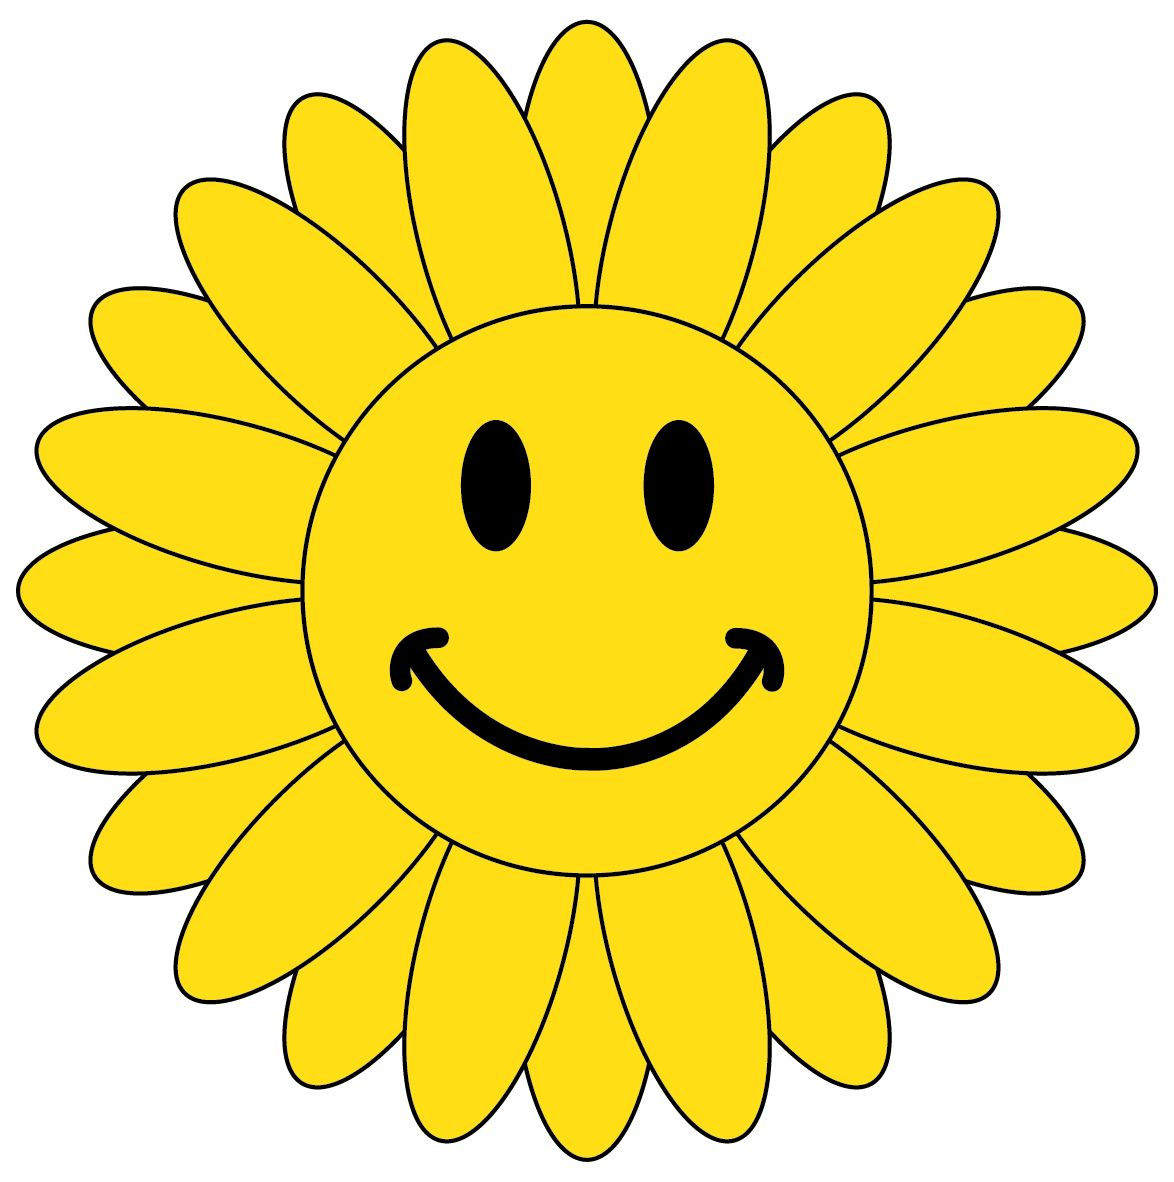 Flower smiley face clipart. Moving faces clip art